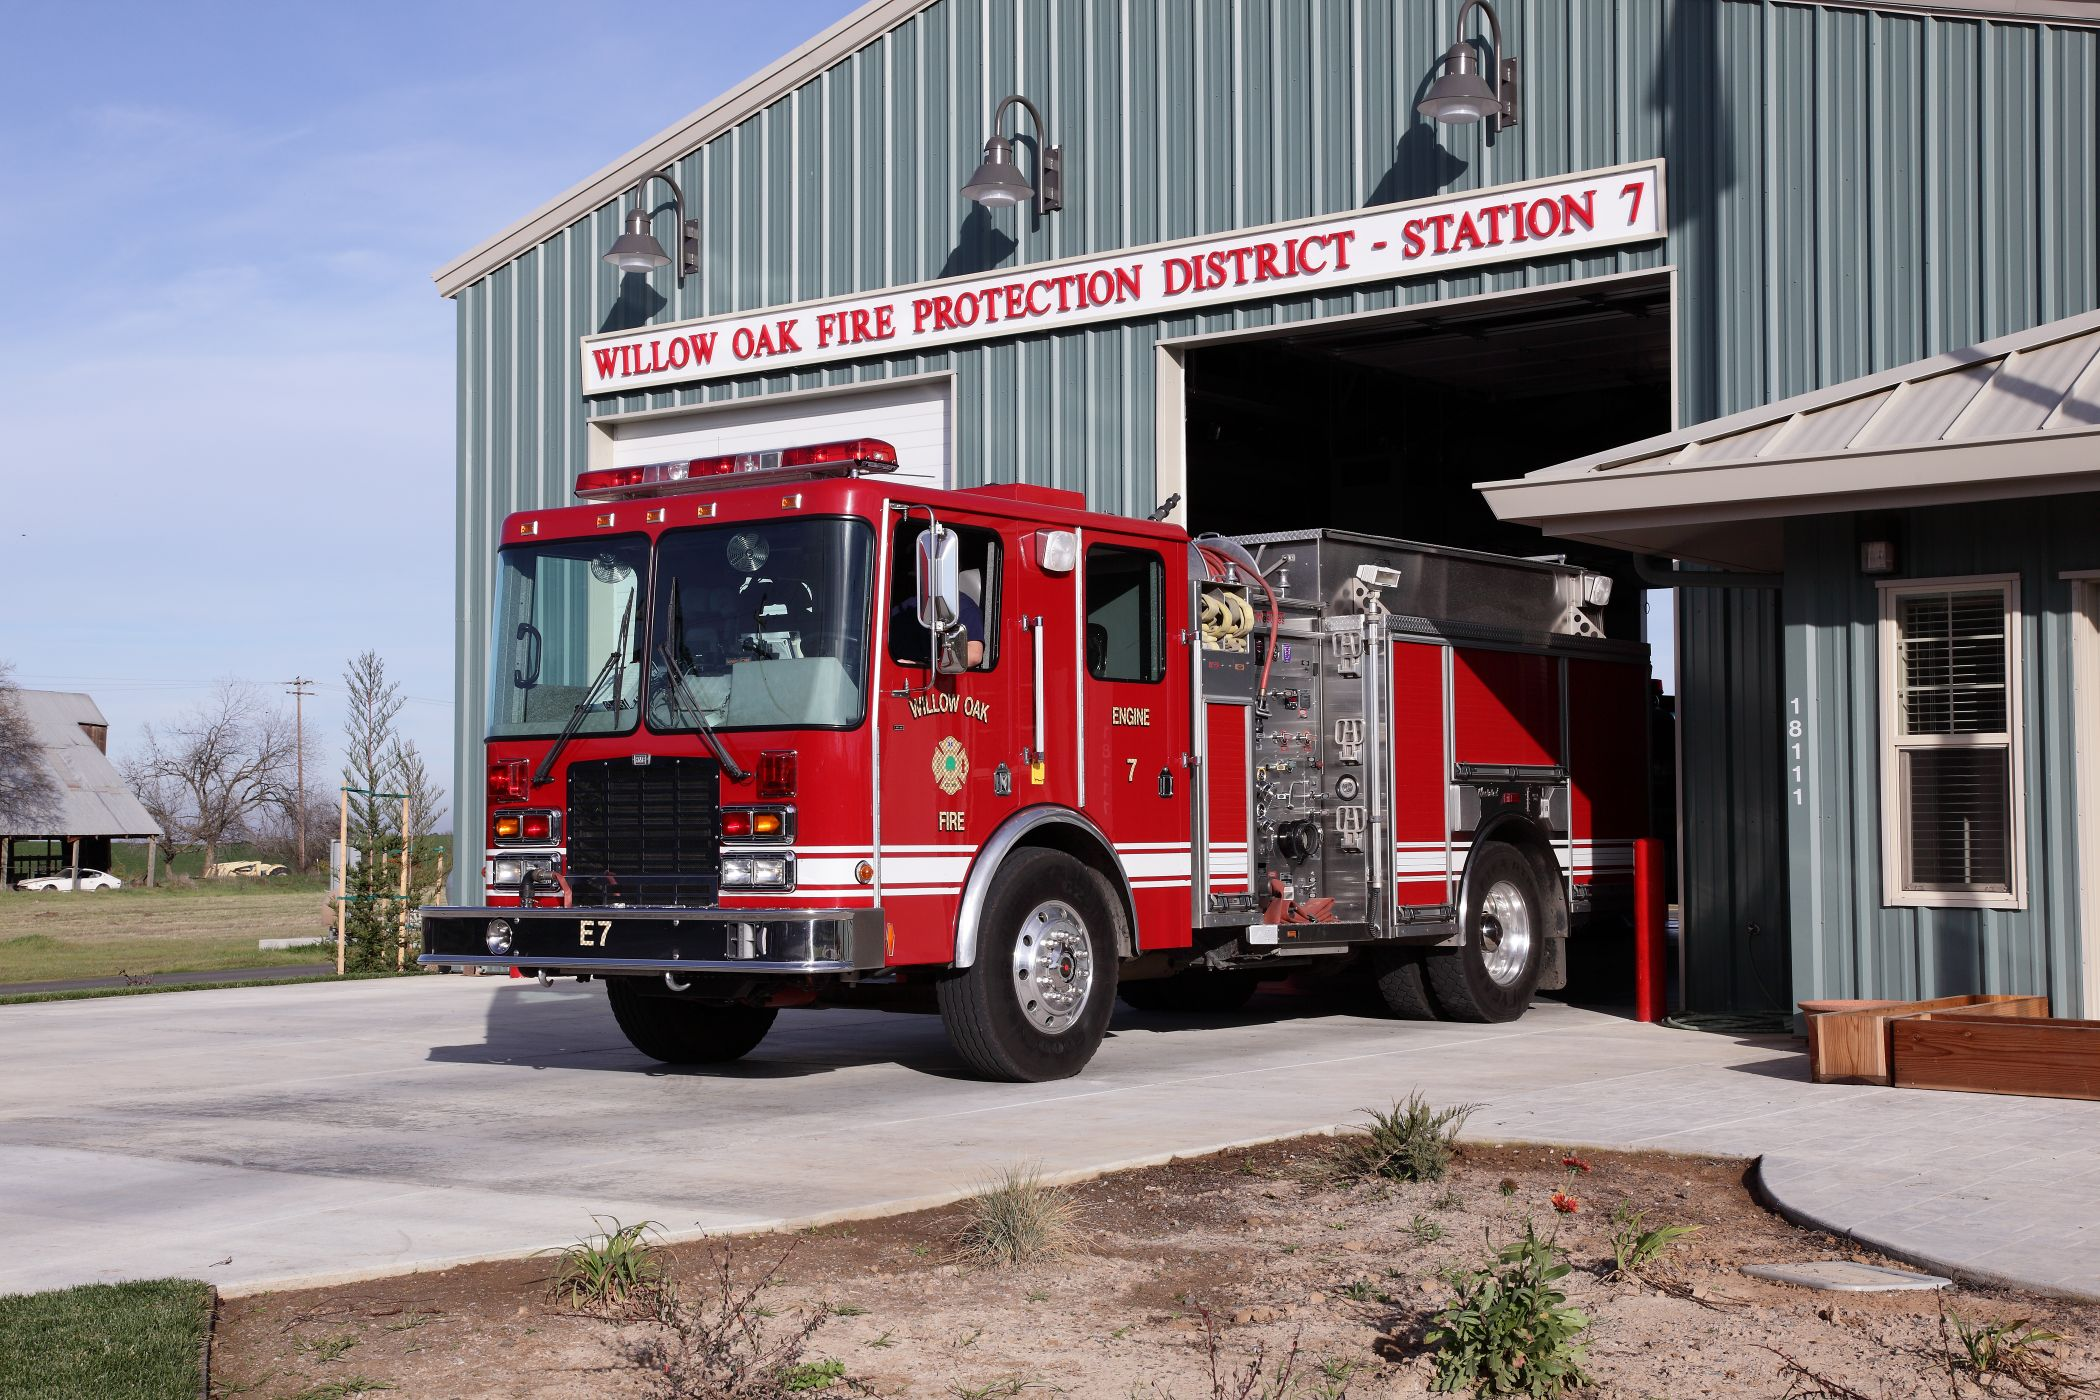 Outside view of fire station and trucks